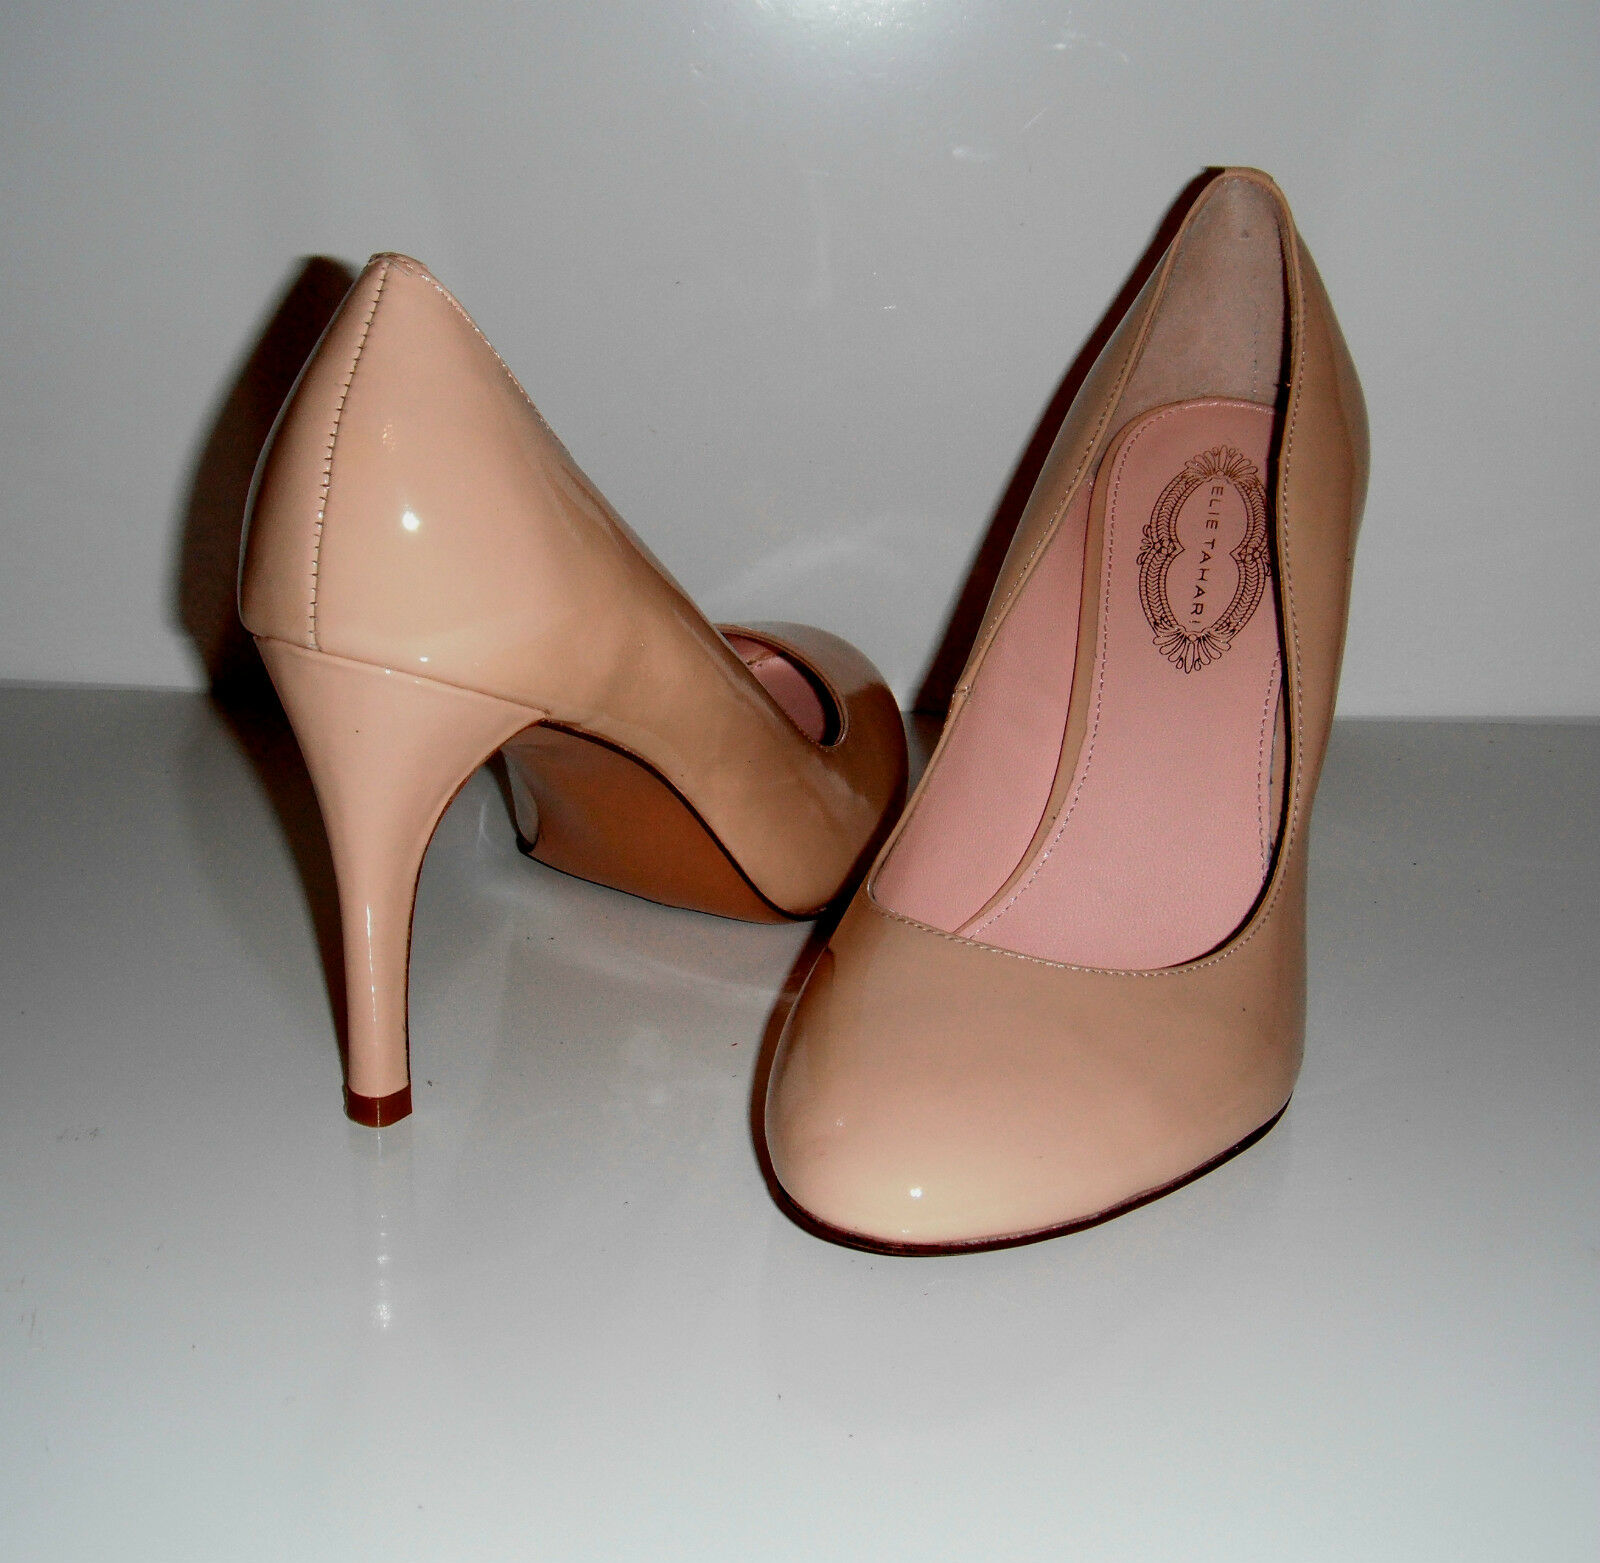 230 NIB Elie Tahari Viviana Seashell Patent Leather Dress Pump shoes sz 9US 40